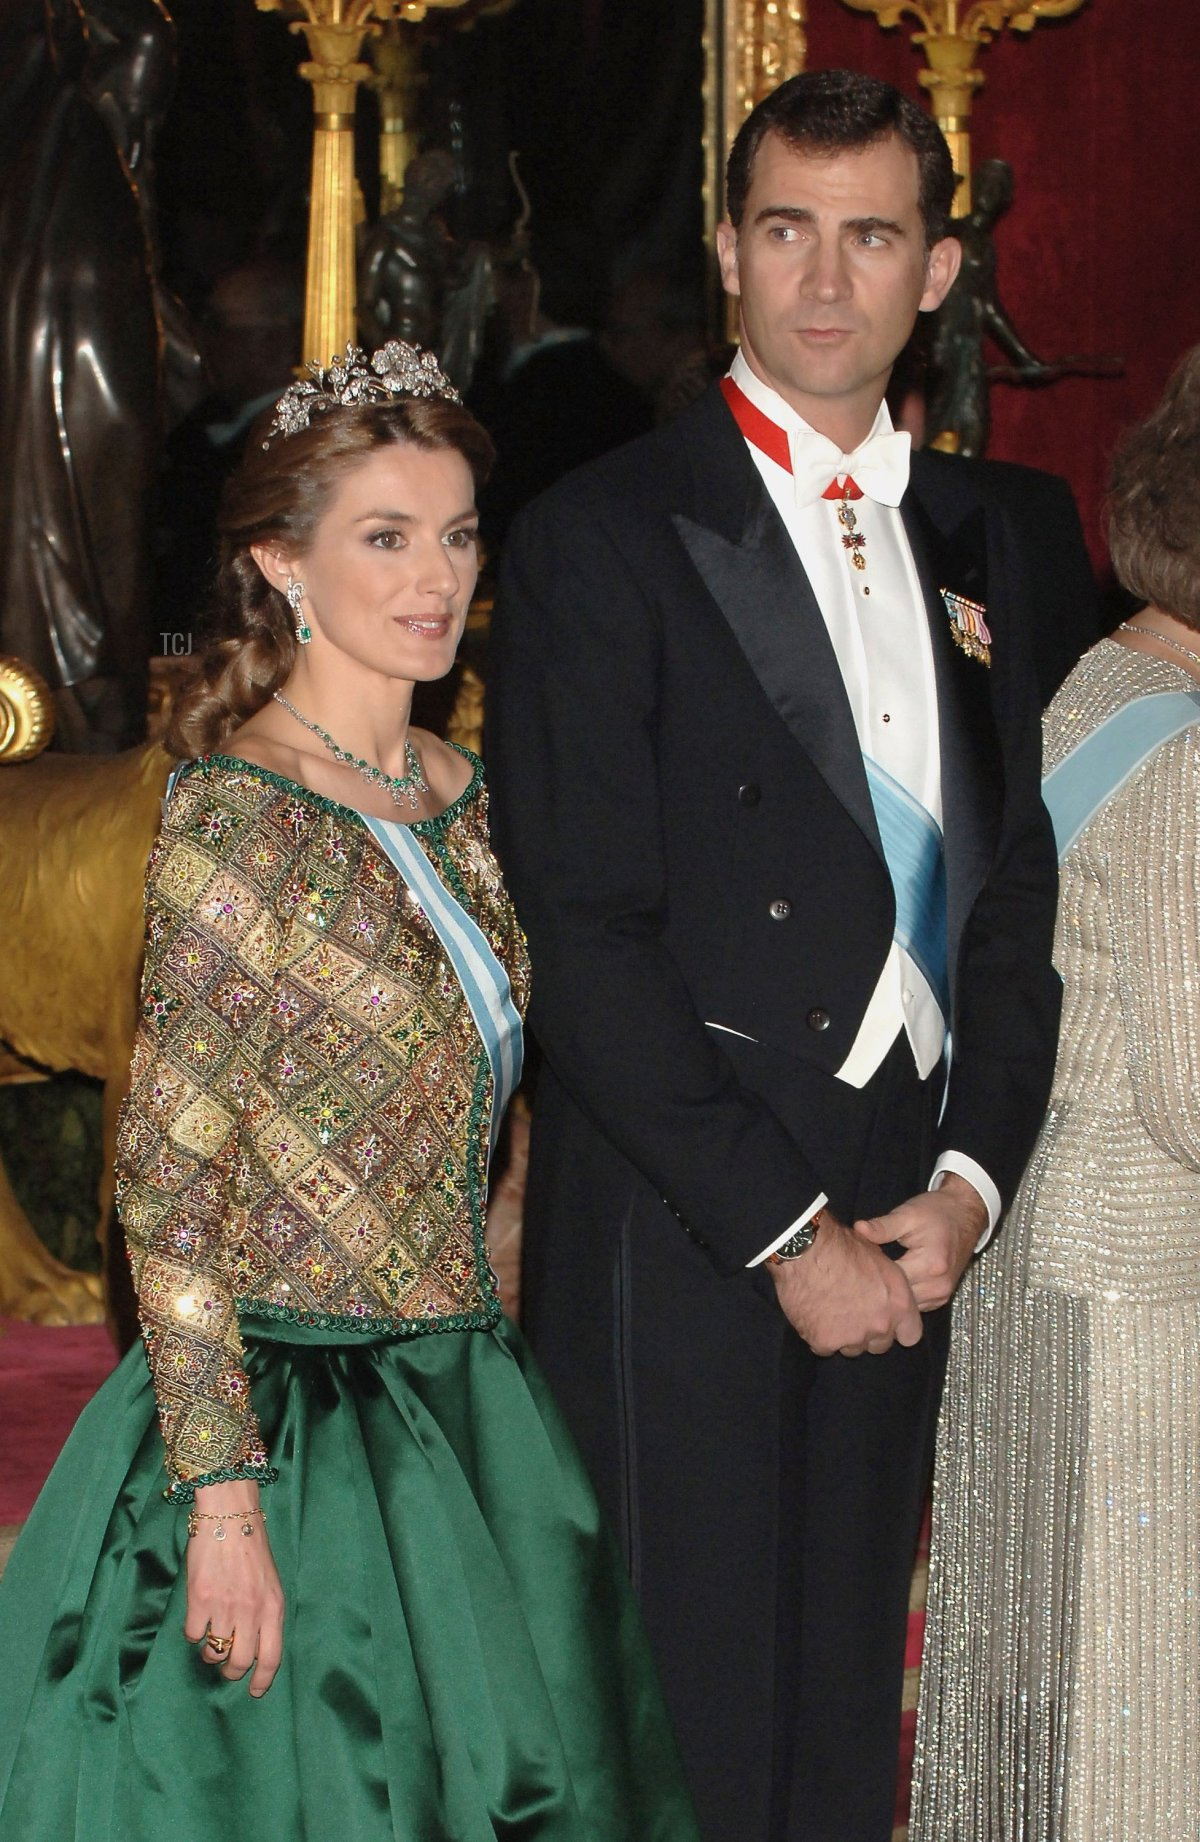 Crown Prince Felipe and Princess Letizia of Spain attend an official dinner in honour of Russian President Vladimir Putin at the Royal Palace, on February 8, 2006 in Madrid, Spain